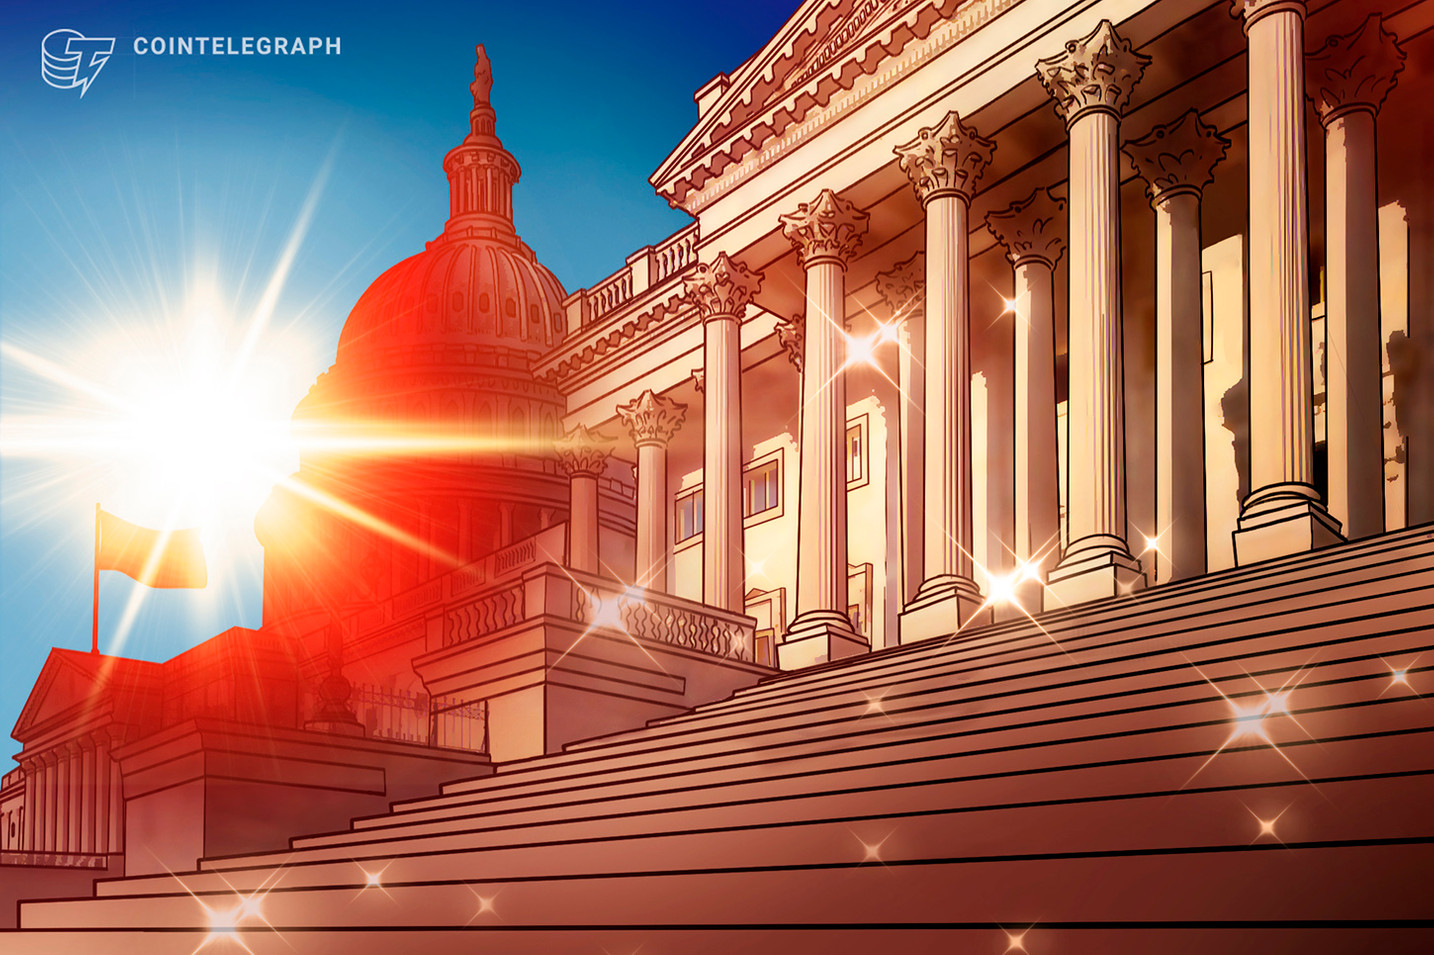 Senator lobbies agencies over the use of crypto in ransomware